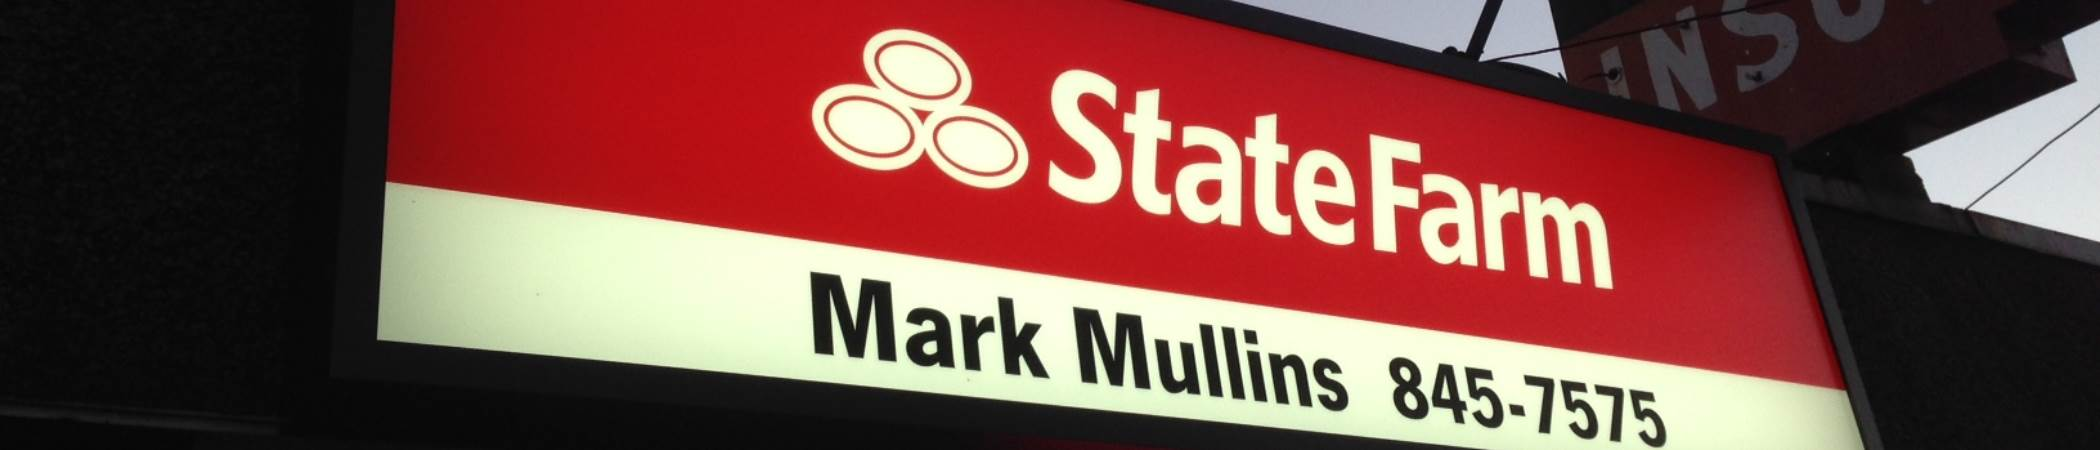 Mark Mullins State Farm Insurance in Puyallup, WA | Home, Auto Insurance & more